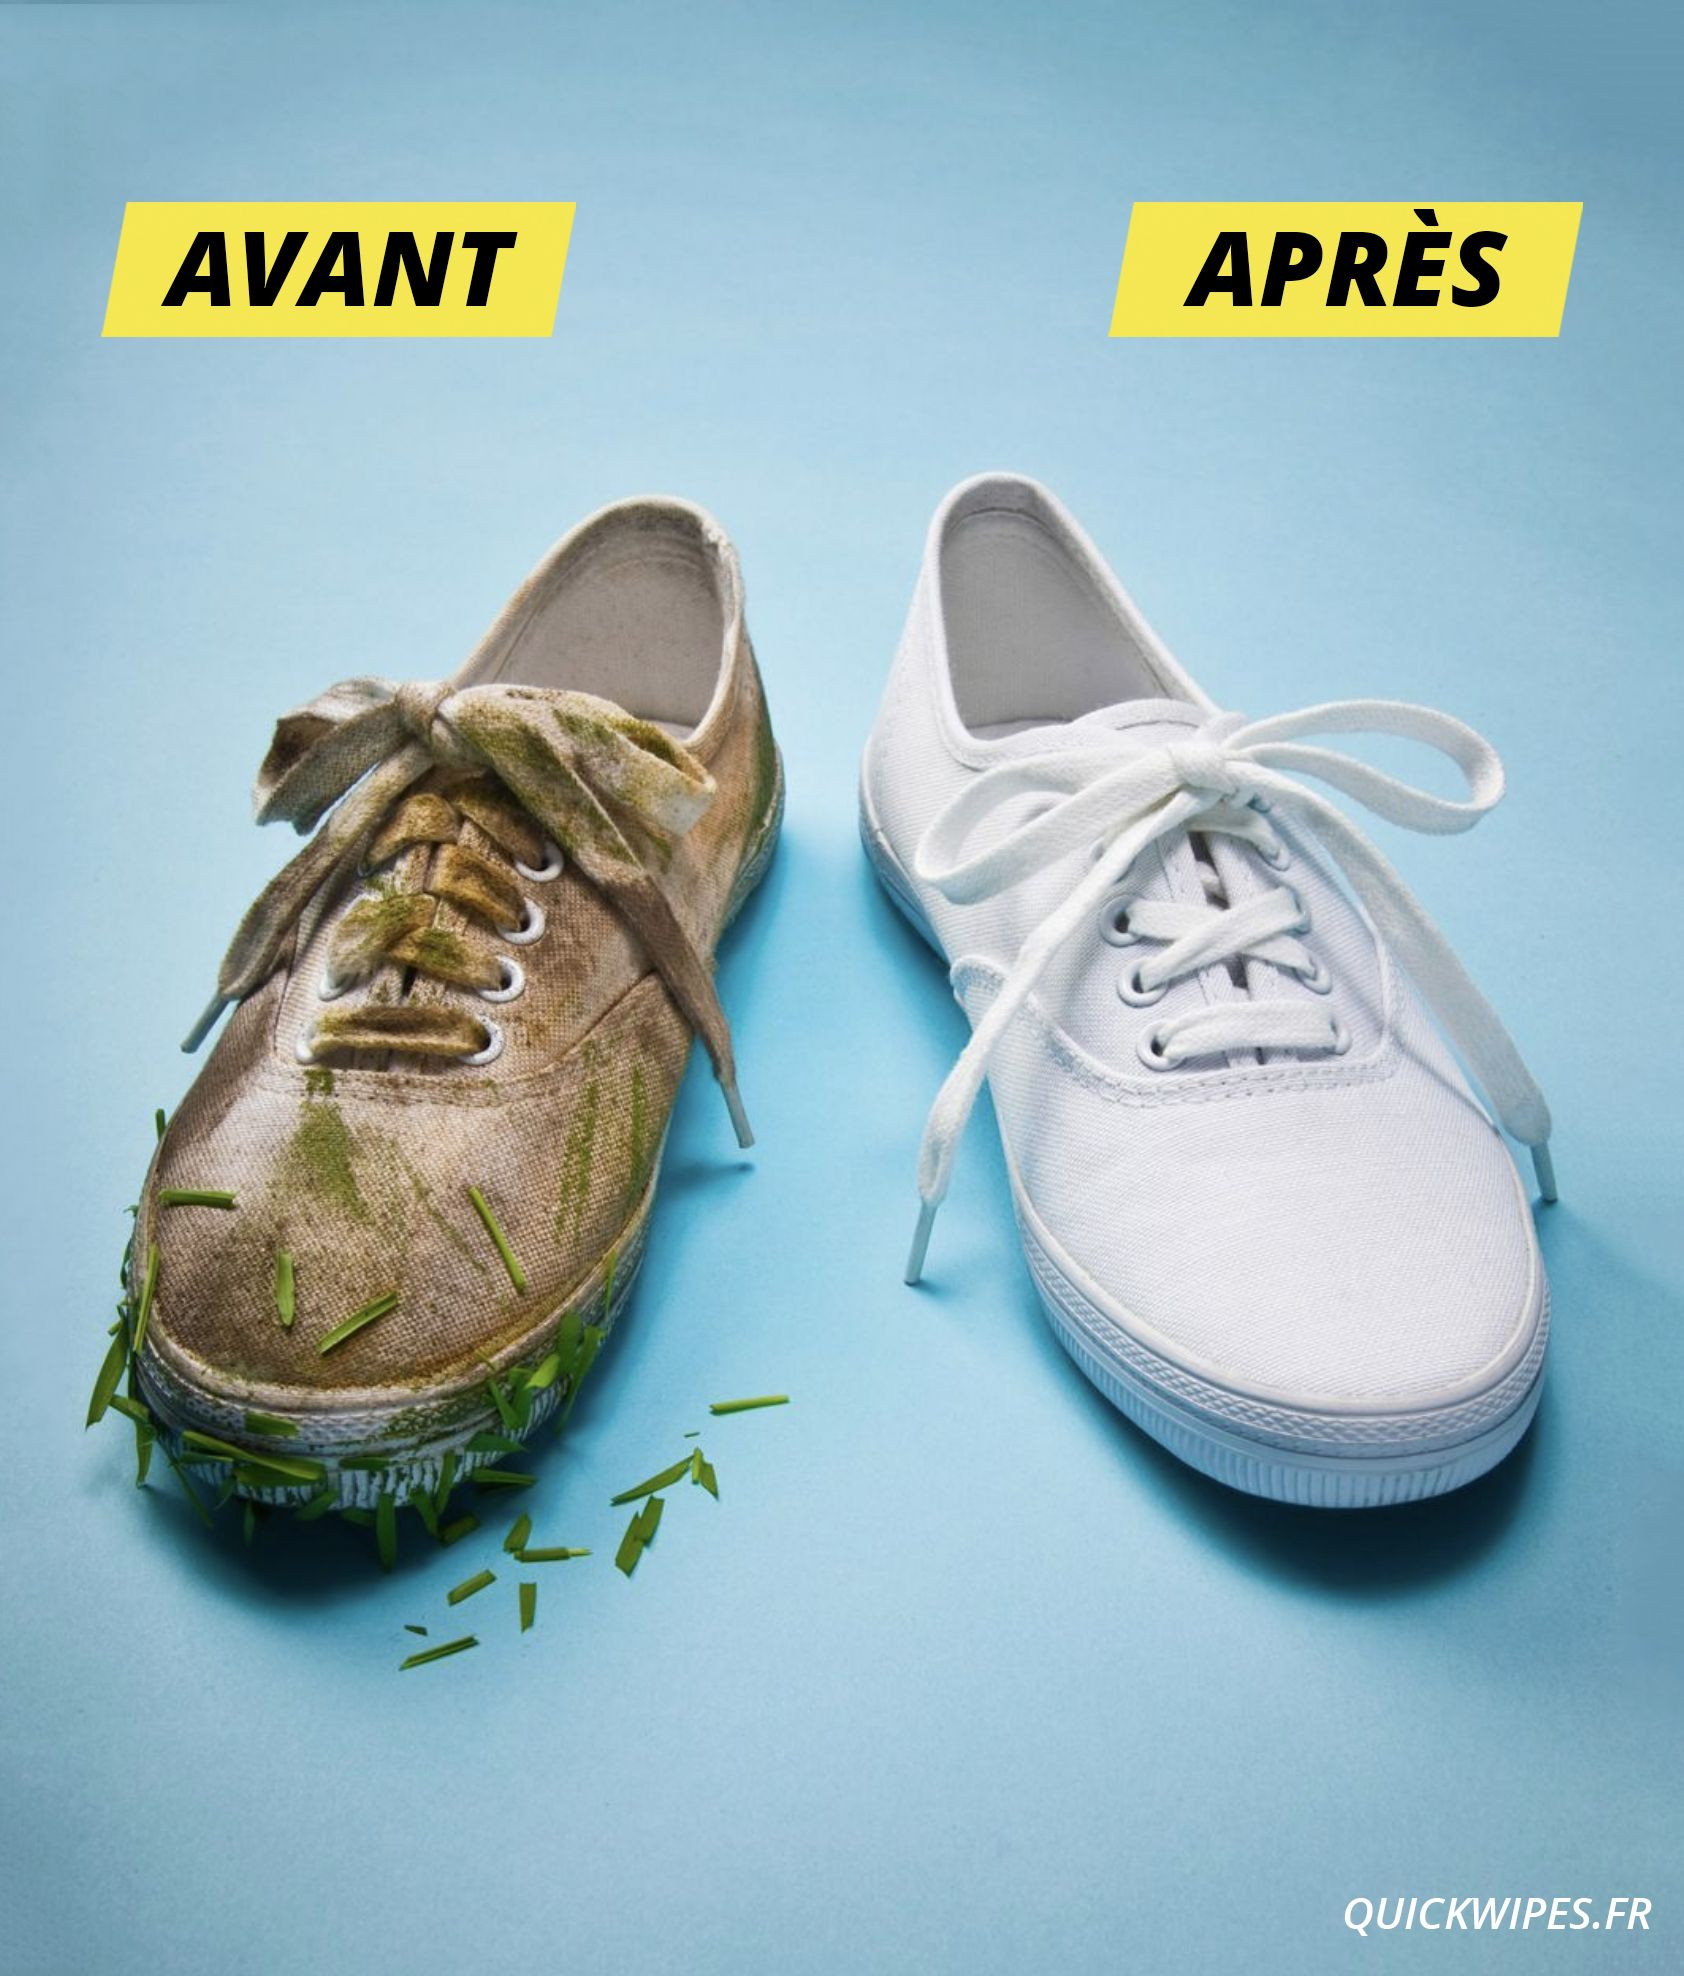 Baskets blanches: comment les nettoyer? L'Express